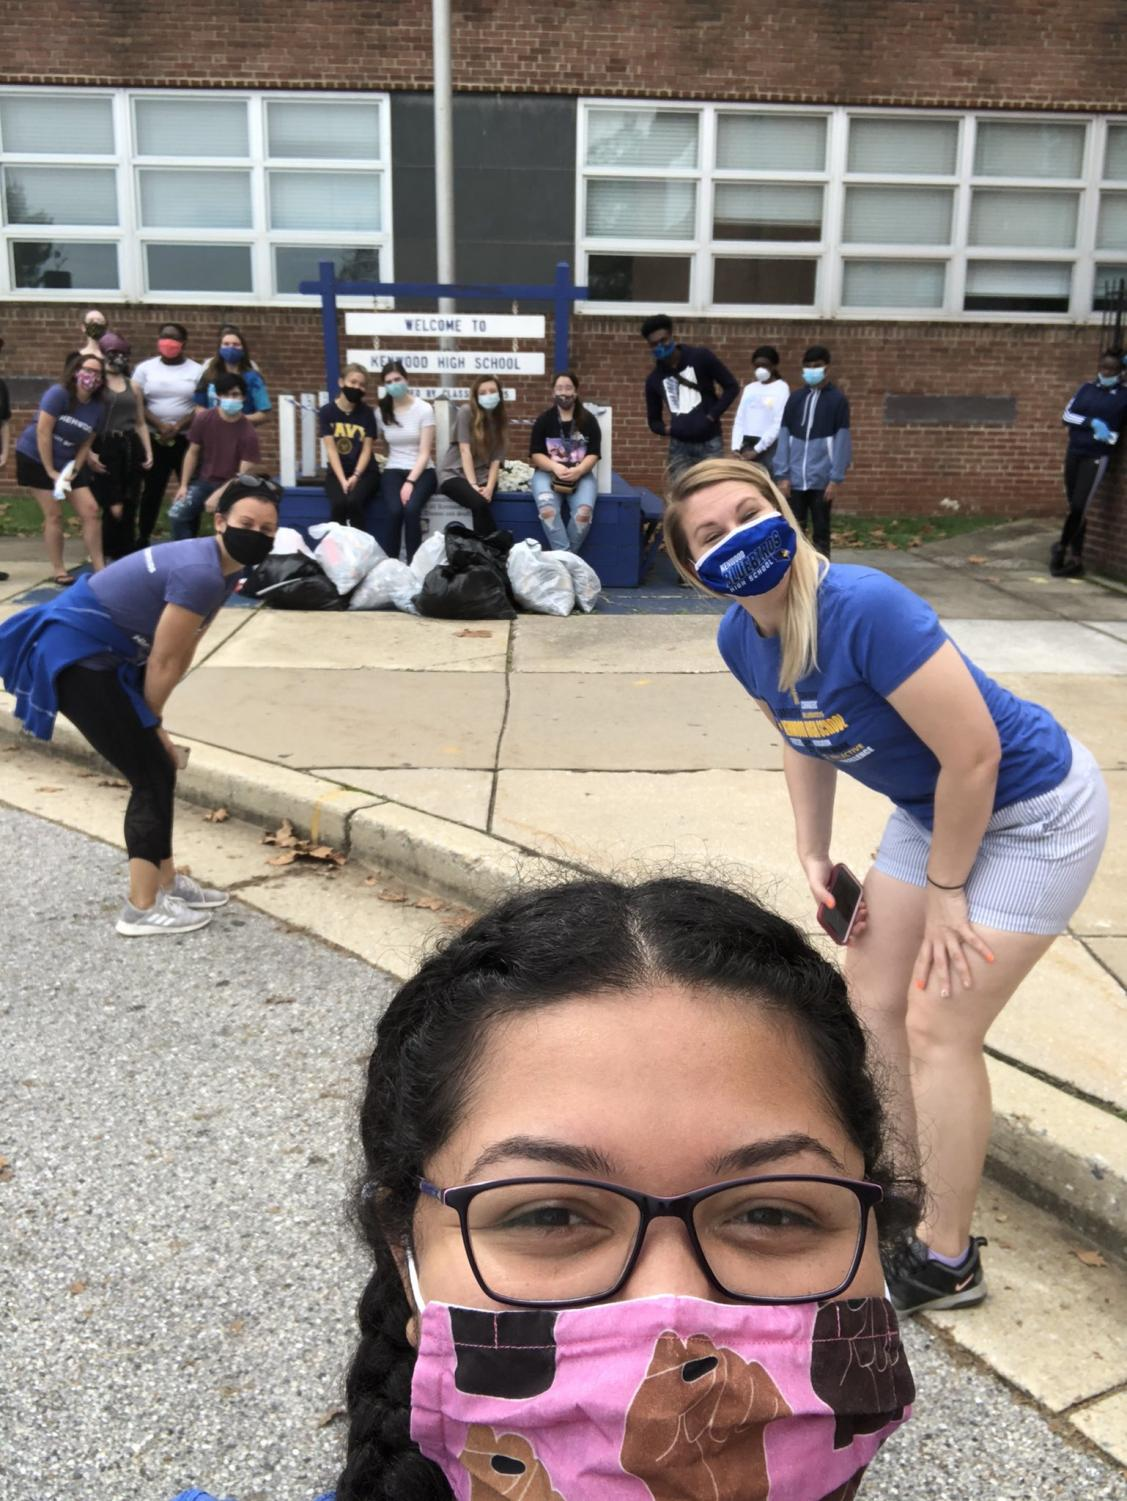 SGA sponsors a campus clean up for students to gather and clean up the campus